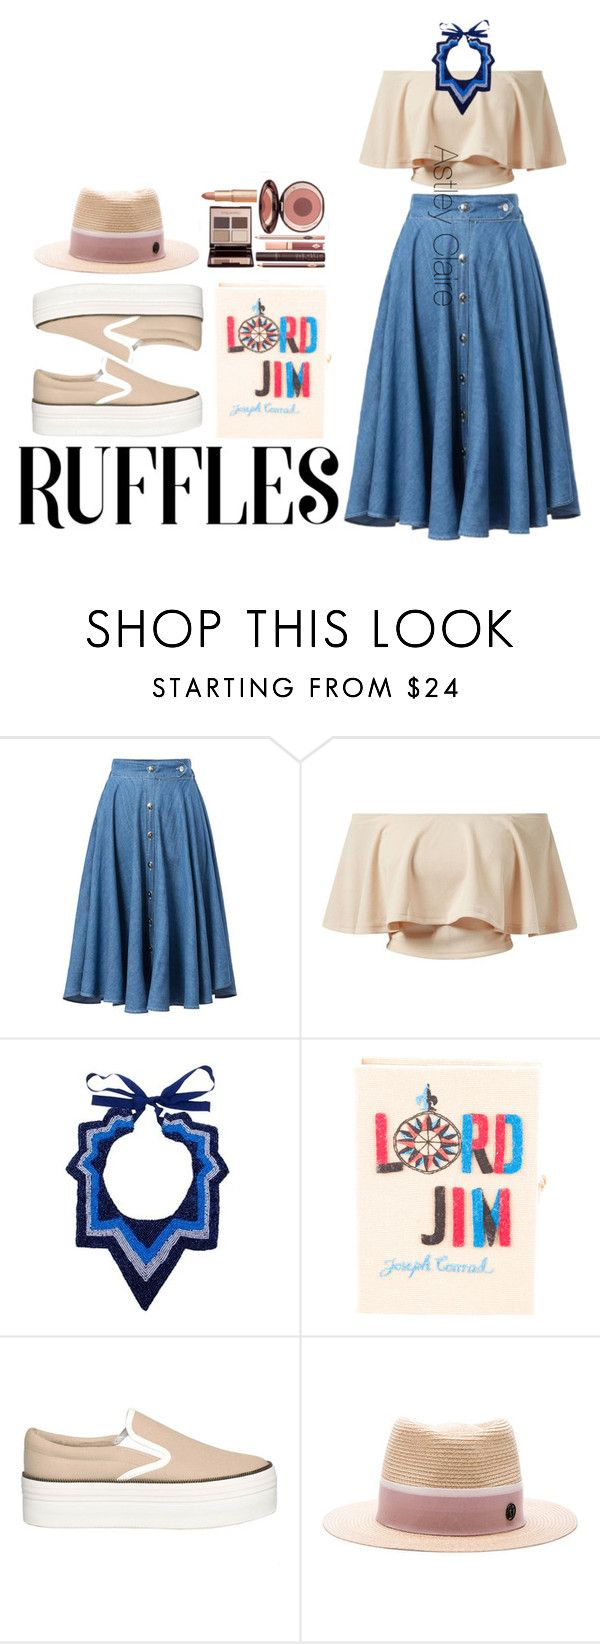 """""""All Ruffled Up"""" by zulfastley on Polyvore featuring AX Paris, Papiroga, Olympia Le-Tan, Jeffrey Campbell, Maison Michel, Charlotte Tilbury and ruffles"""